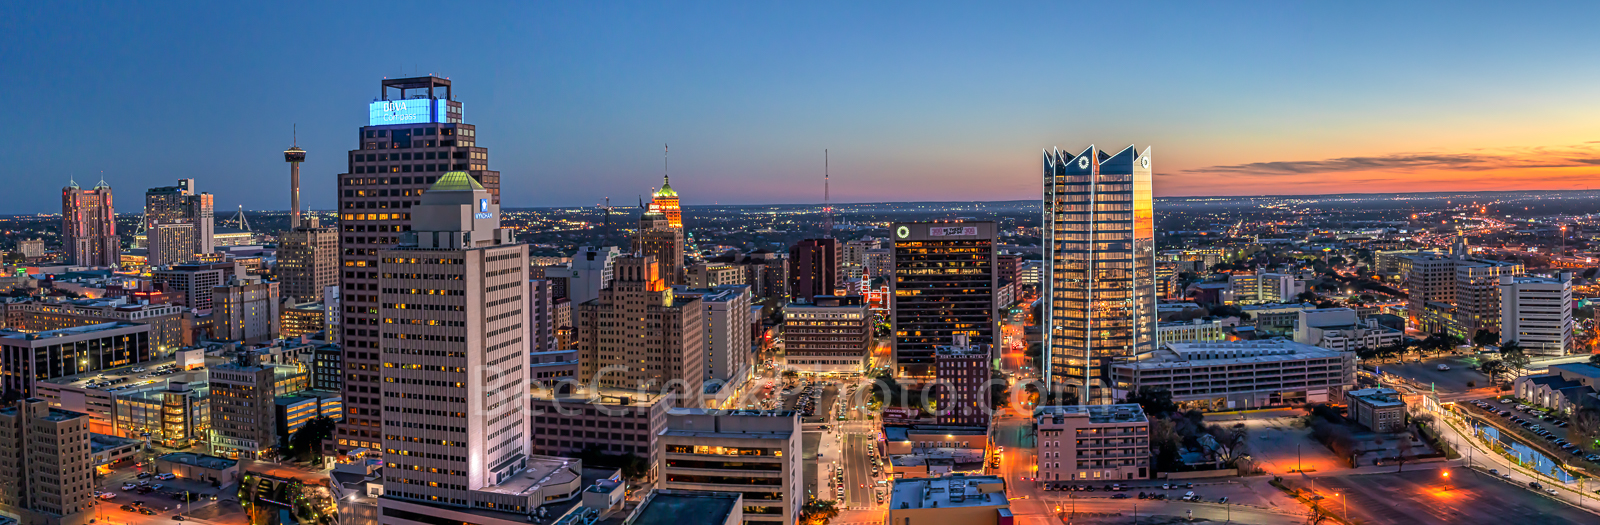 sunset, twilight, San Antonio skyline, San Antonio, texas, downtown, Frost Tower, Frost, Tower Life, building, pano, panorama, cityscape, cityscapes, urban, skyline,